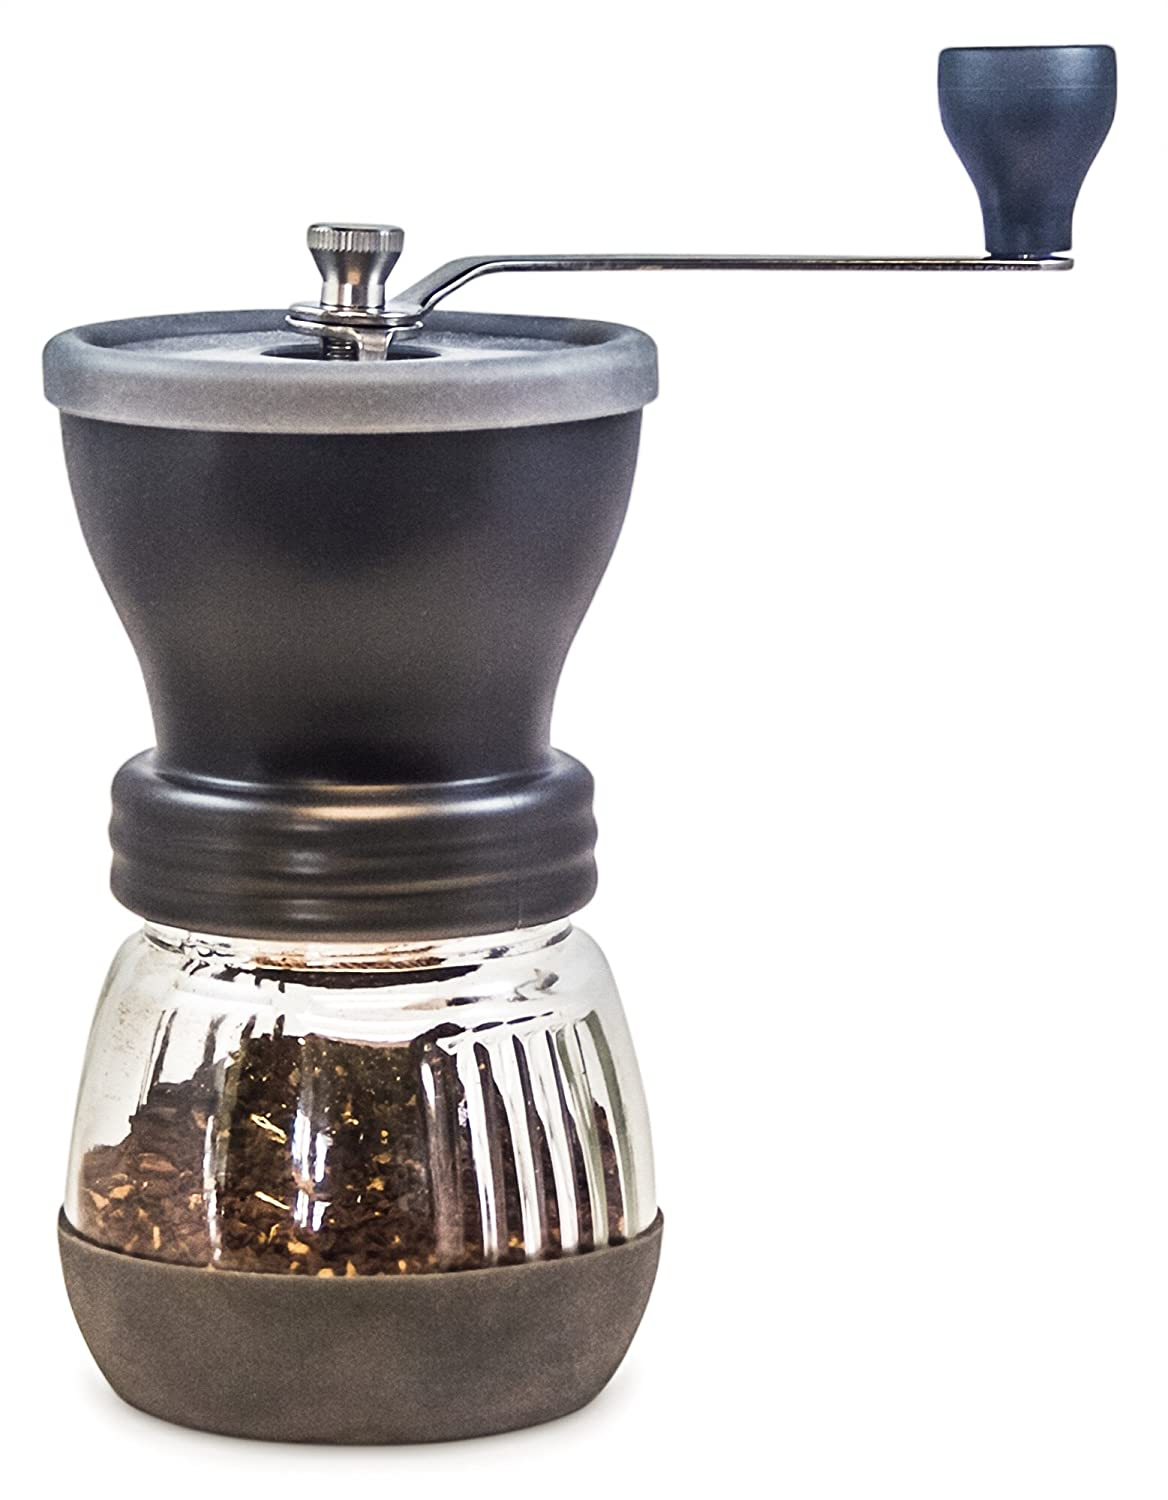 Khaw-Fee HG1B Manual Coffee Grinder Review